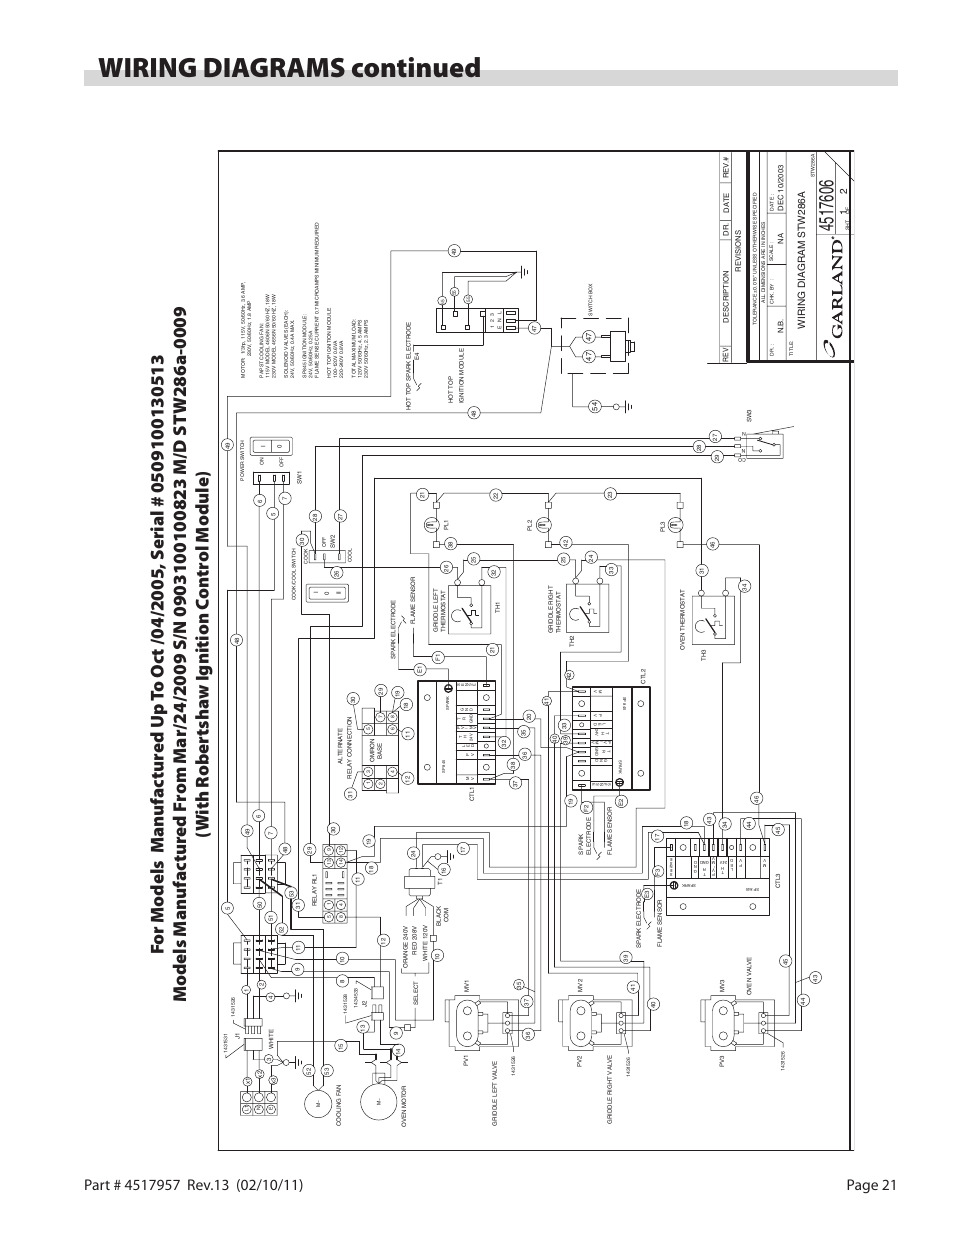 Wiring diagrams continued | Garland STW286A User Manual ... on